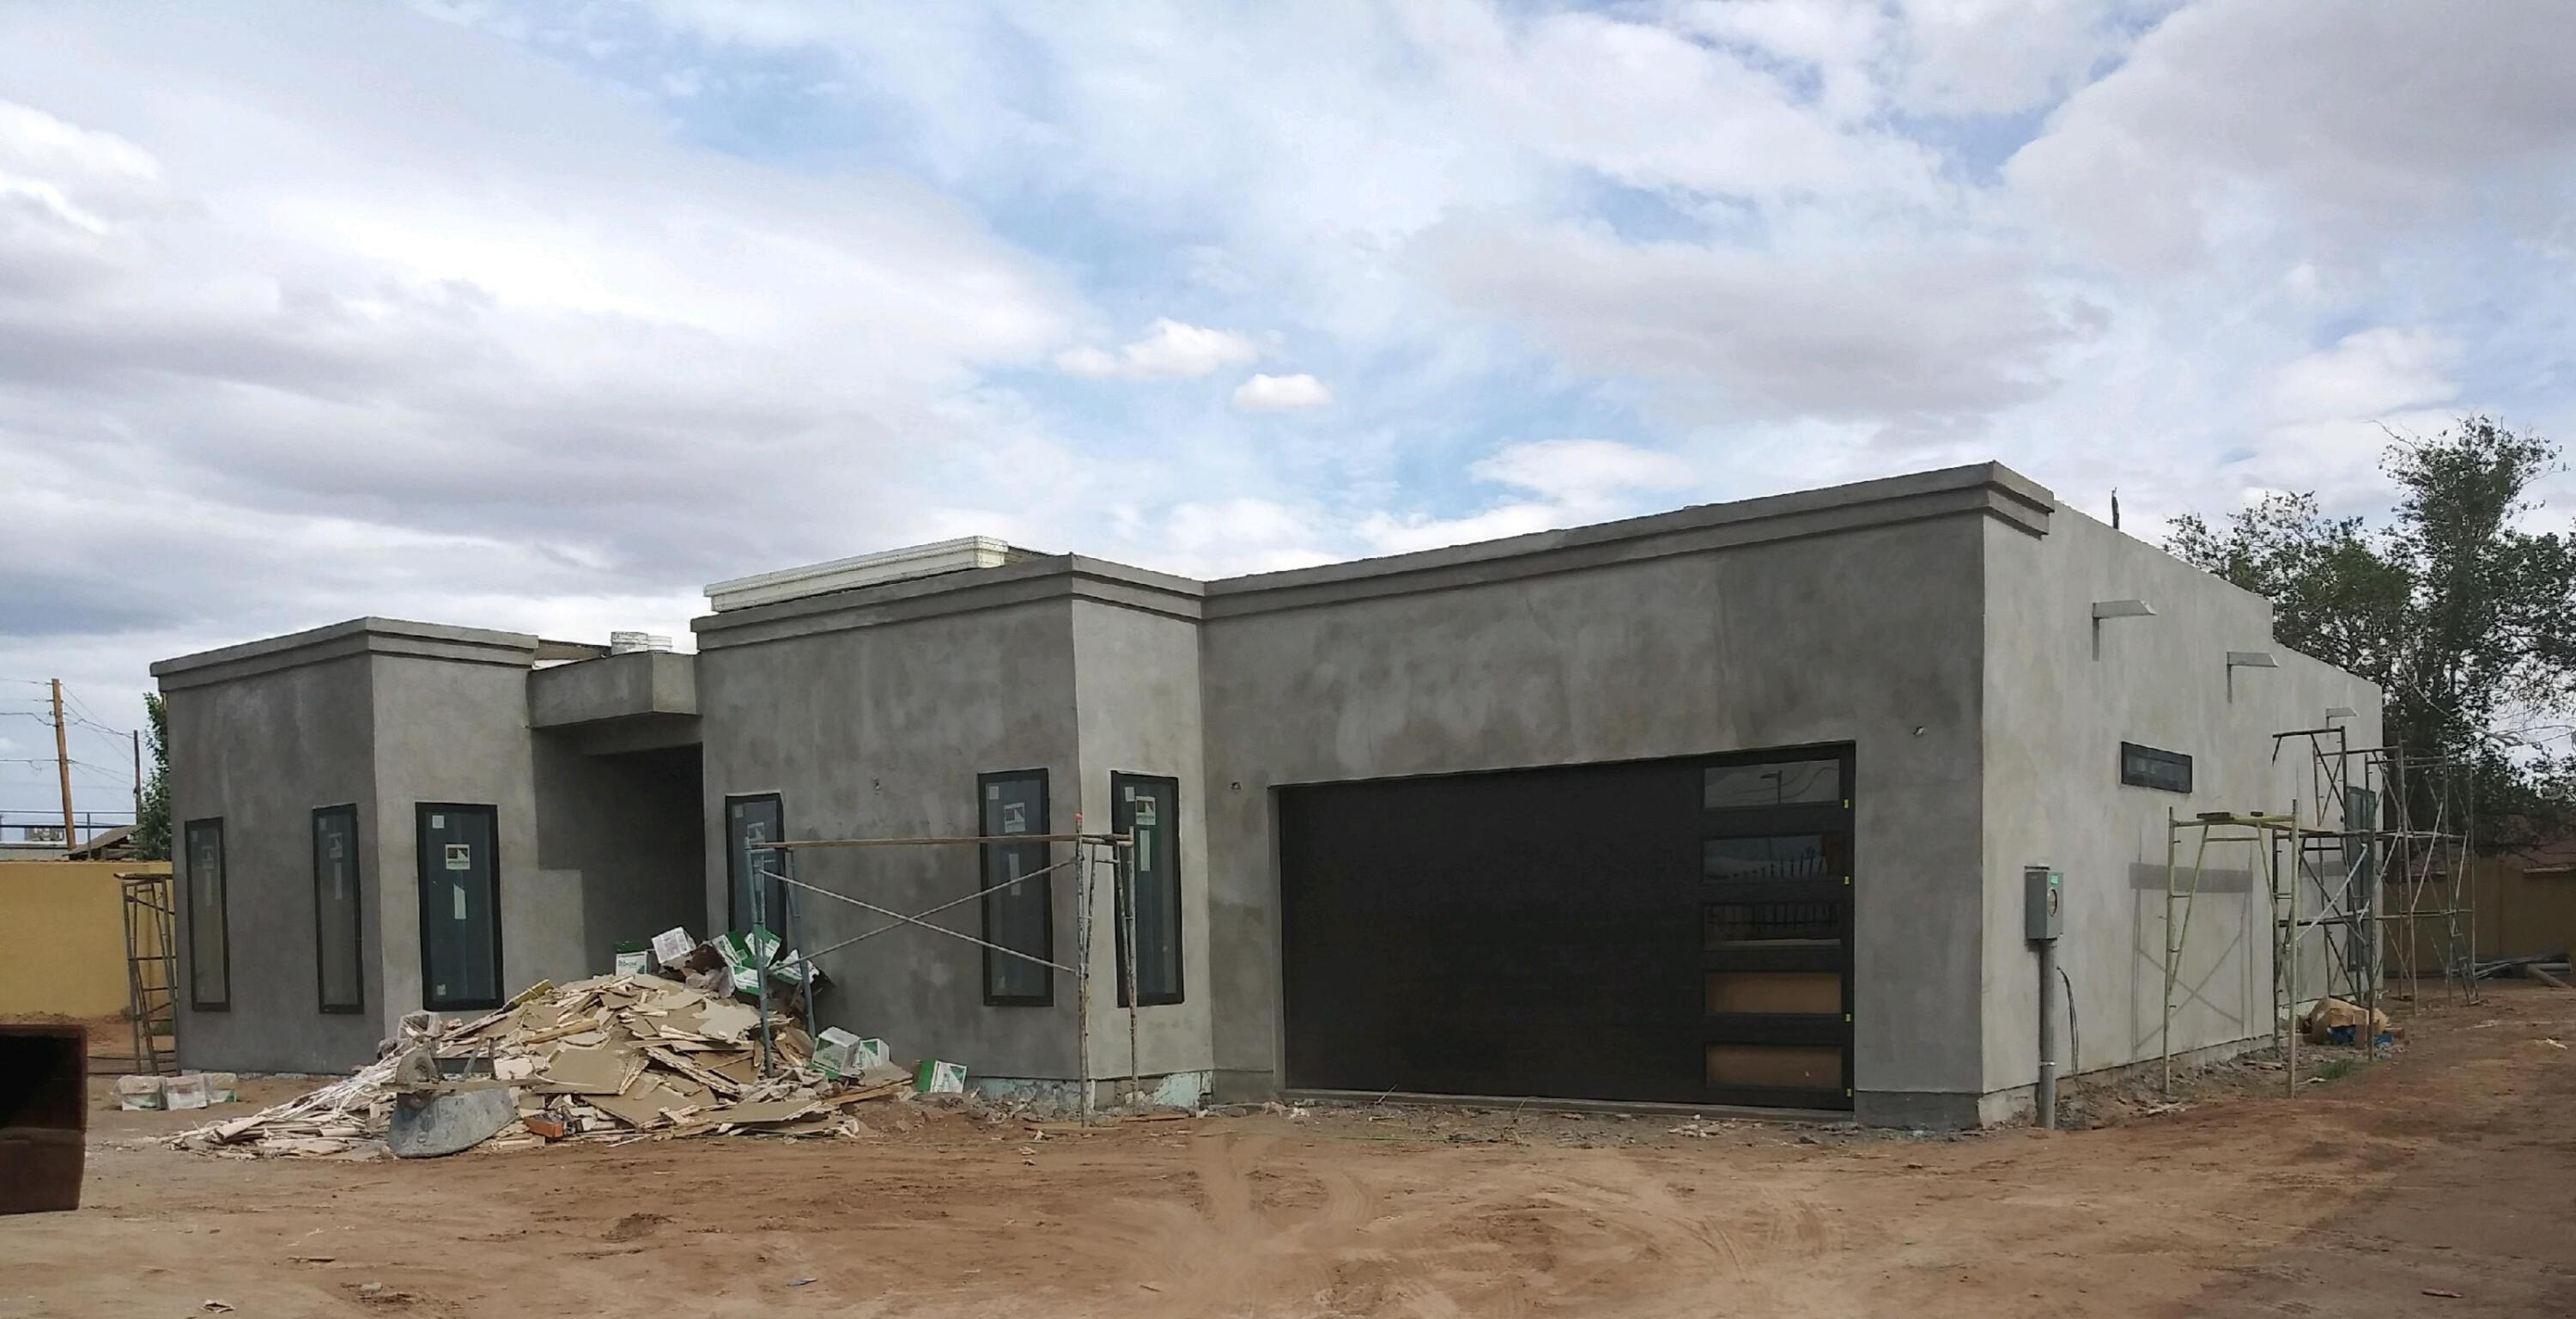 Under construction for early May 2021 completion. Pics coming soon. Buy now and make the south Valley your new home.  A rare find indeed - affordable, new homes in Albuquerque. Loaded w/amenities incl linear fireplace, Stainless appliance  pkg  & convection oven + micro , SS DW, SxS refrig, Tile in entry, kitchen, laundry, dining, baths, family and hall. Garage has extra storage area and garage door opener. , Front landscaping, LED lighting, oversize kitchen sink. Master has dual vanities, freestanding tub + separate shower, large walk in closet. Handicap accessible shower.12' ceilings in the kitchen and living room w/furrdowns . This home has it all.  on 1/3 of an acer. Back Yard access.Set up your appointments before it is sold.